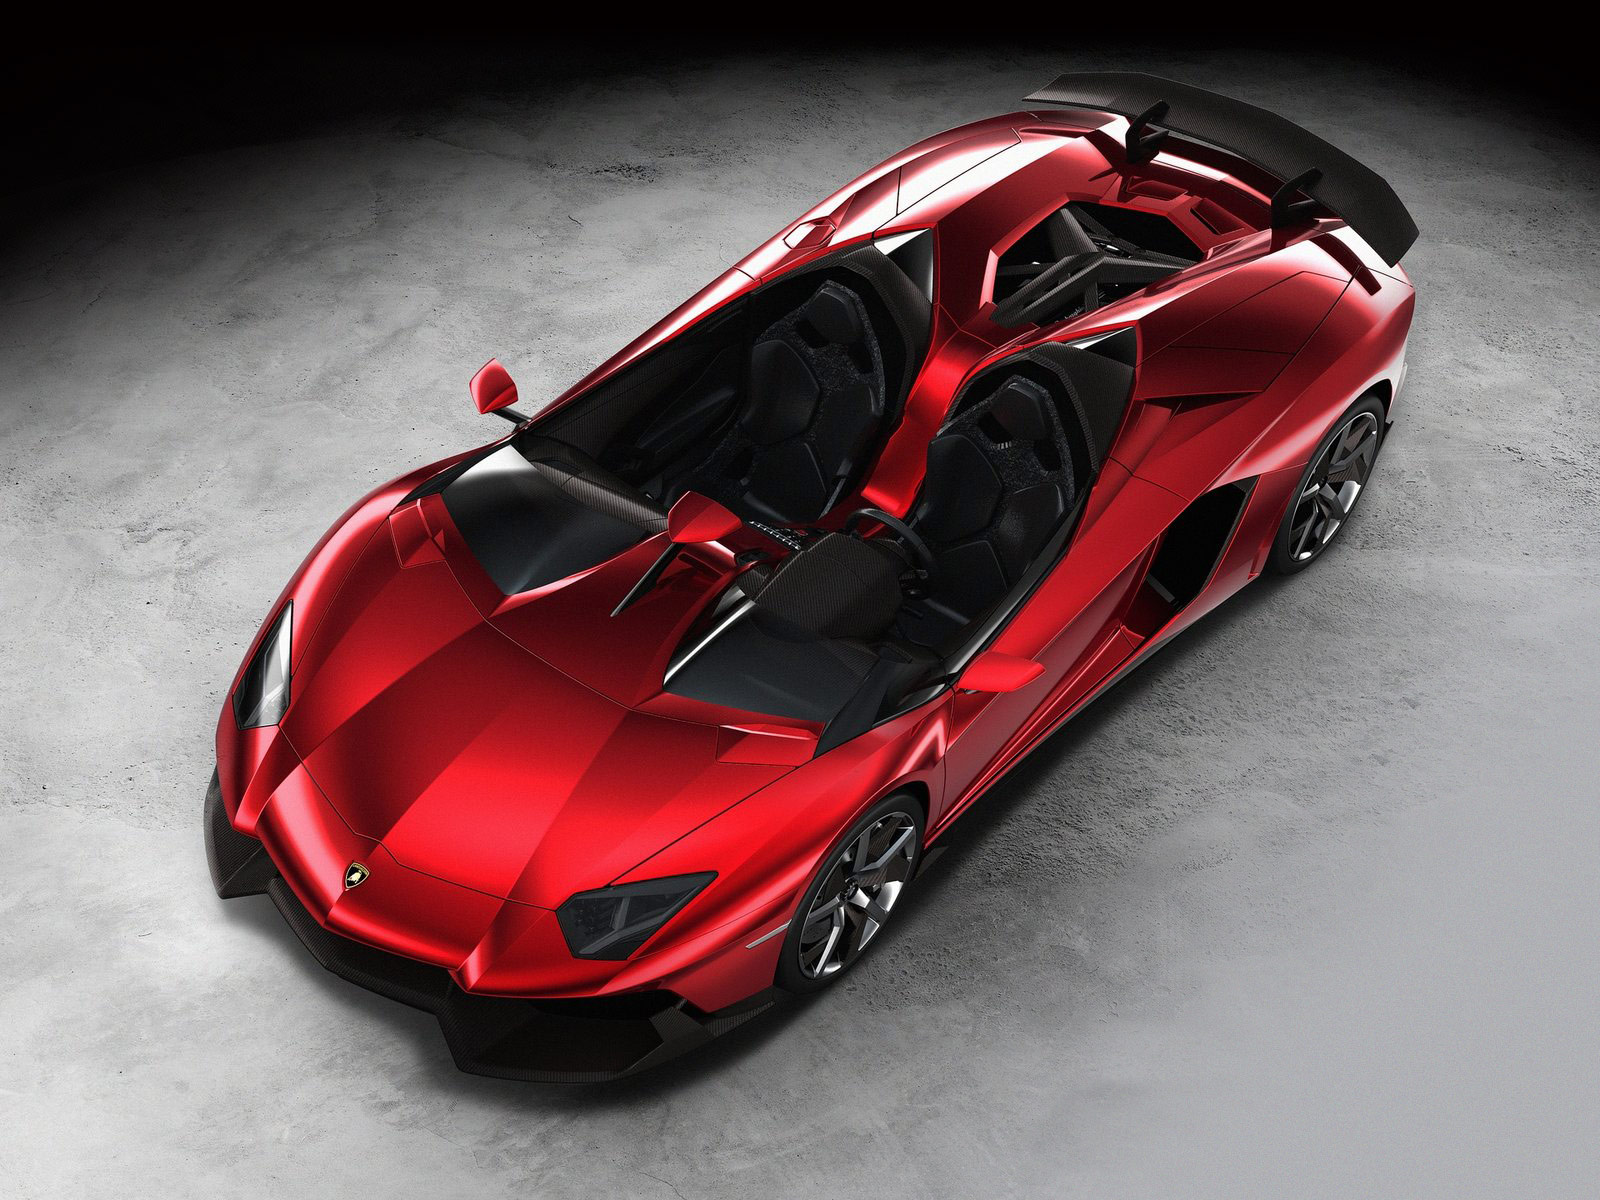 MOBIL SPORT LAMBORGHINI 2012 WALLPAPER Image Galleries ImageKBcom